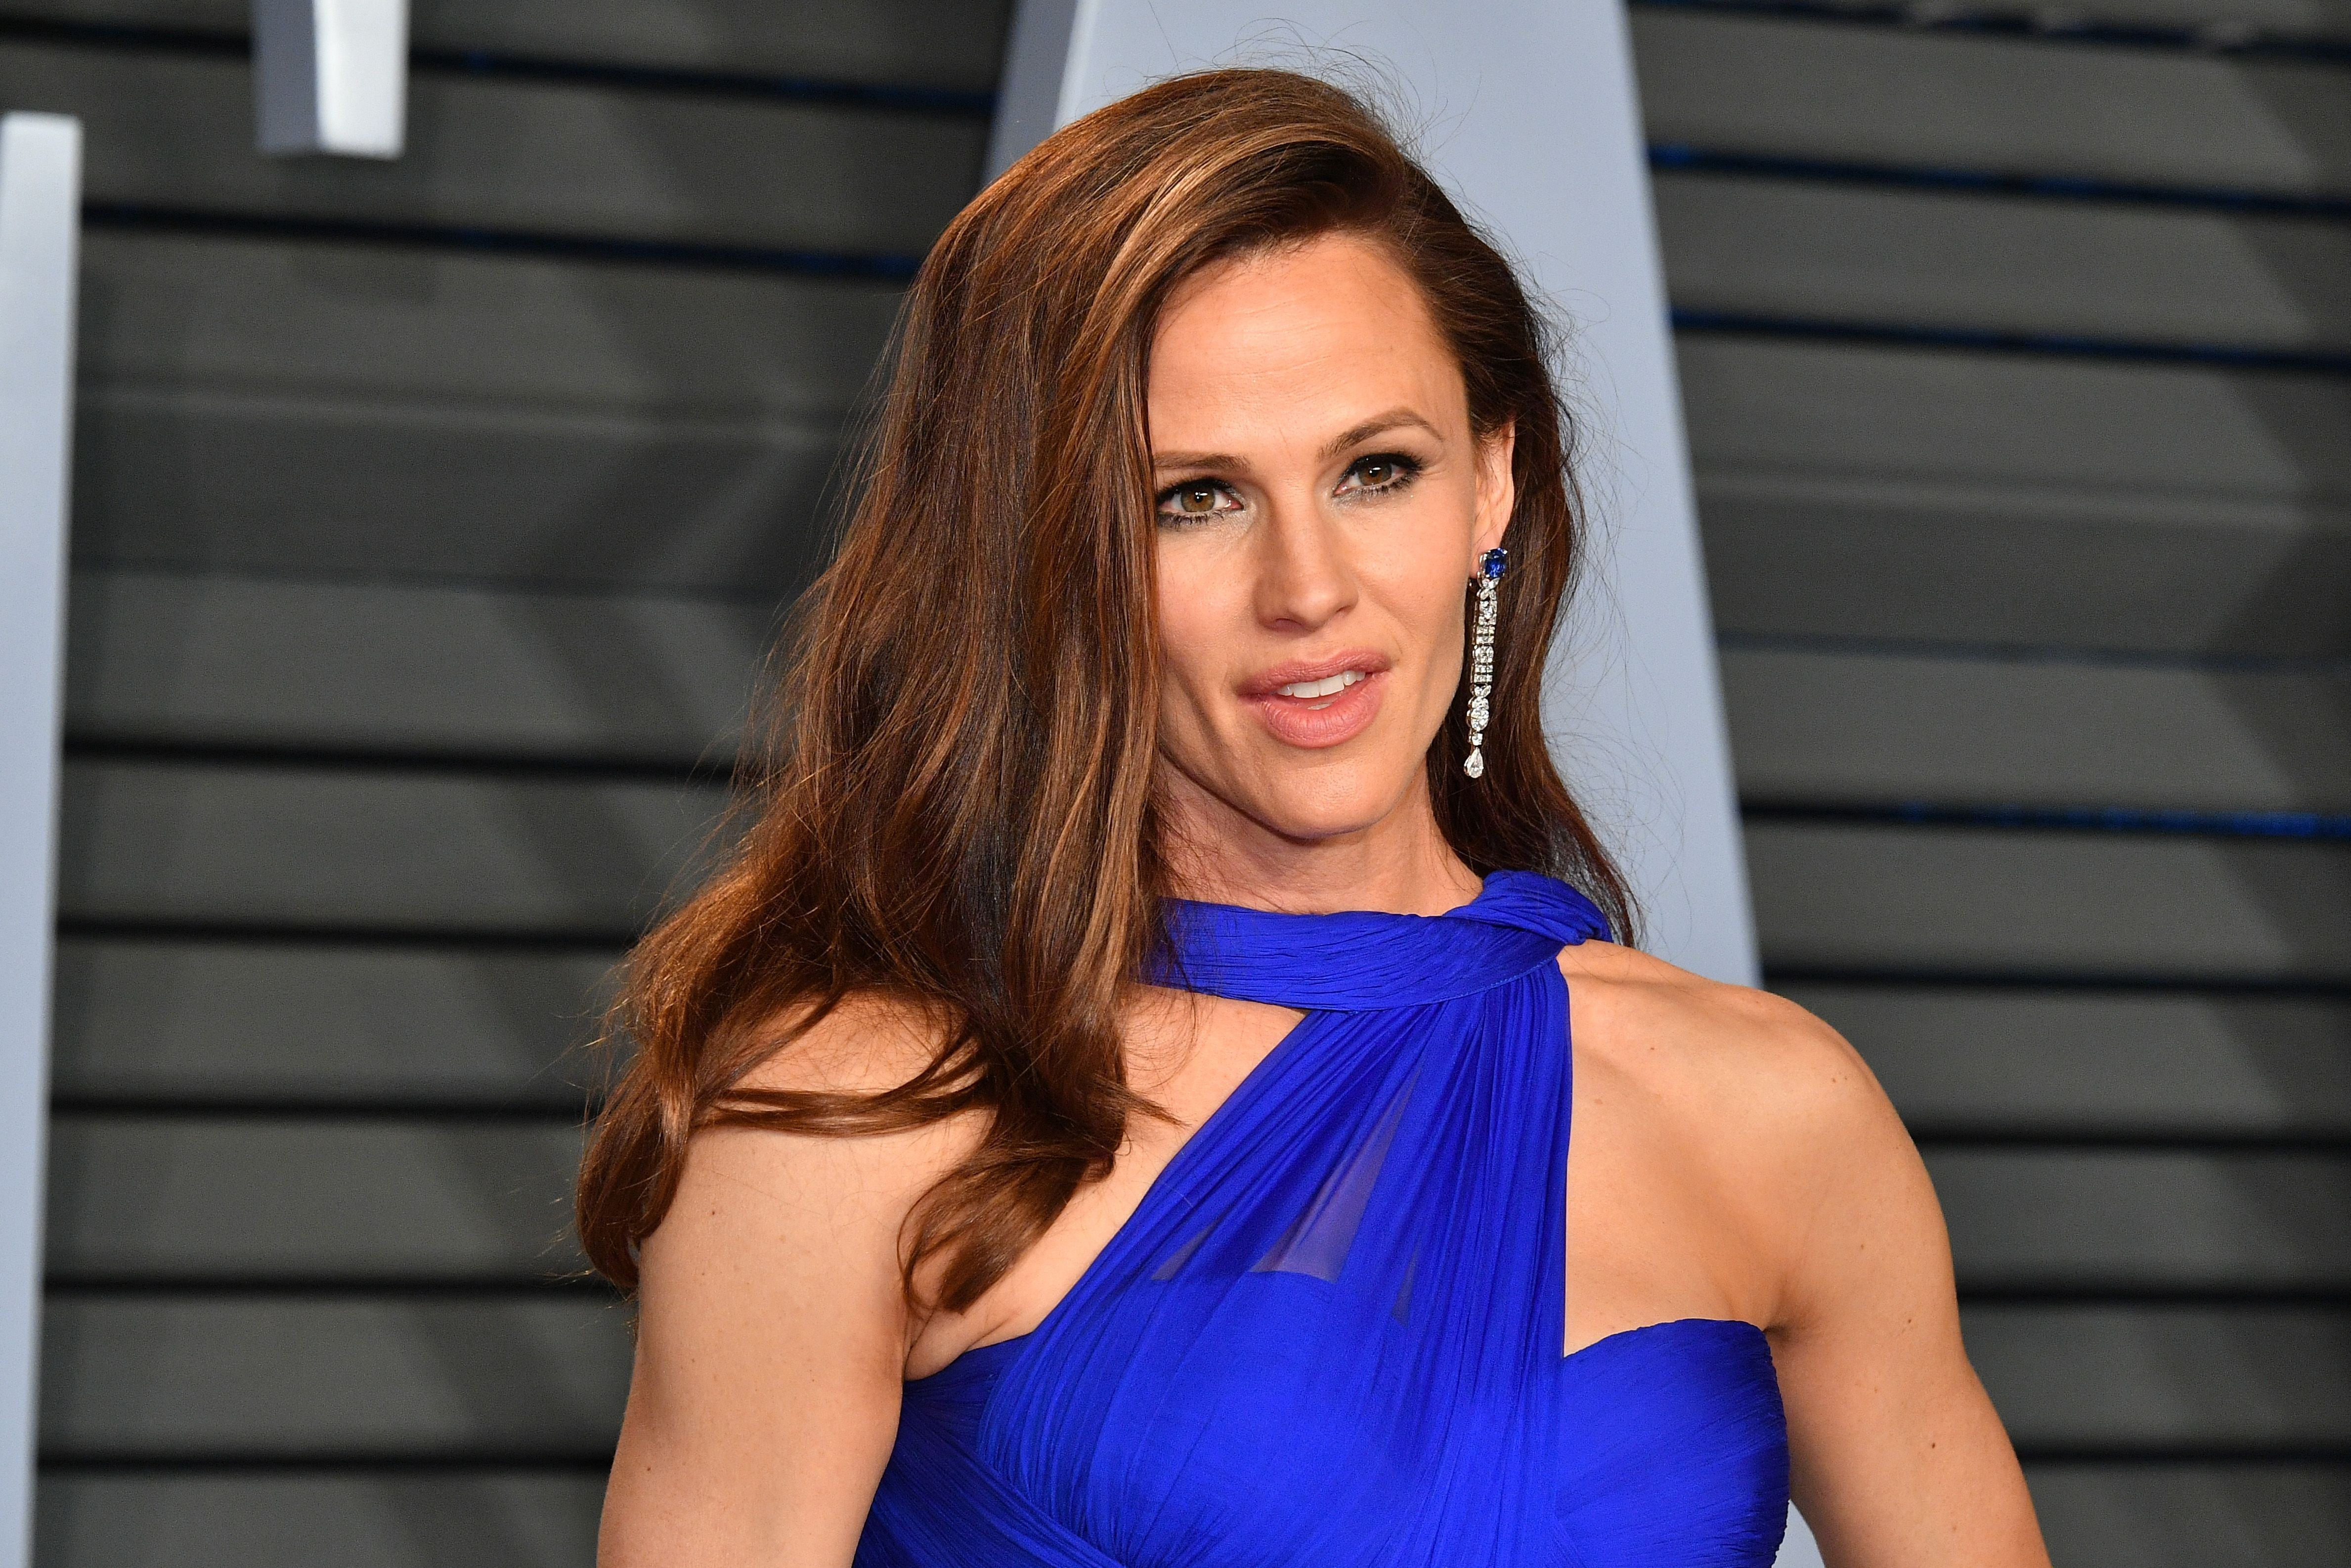 Jennifer Garner at the Vanity Fair Oscar Party hosted by Radhika Jones at Wallis Annenberg Center for the Performing Arts on March 4, 2018 | Photo: Getty Images